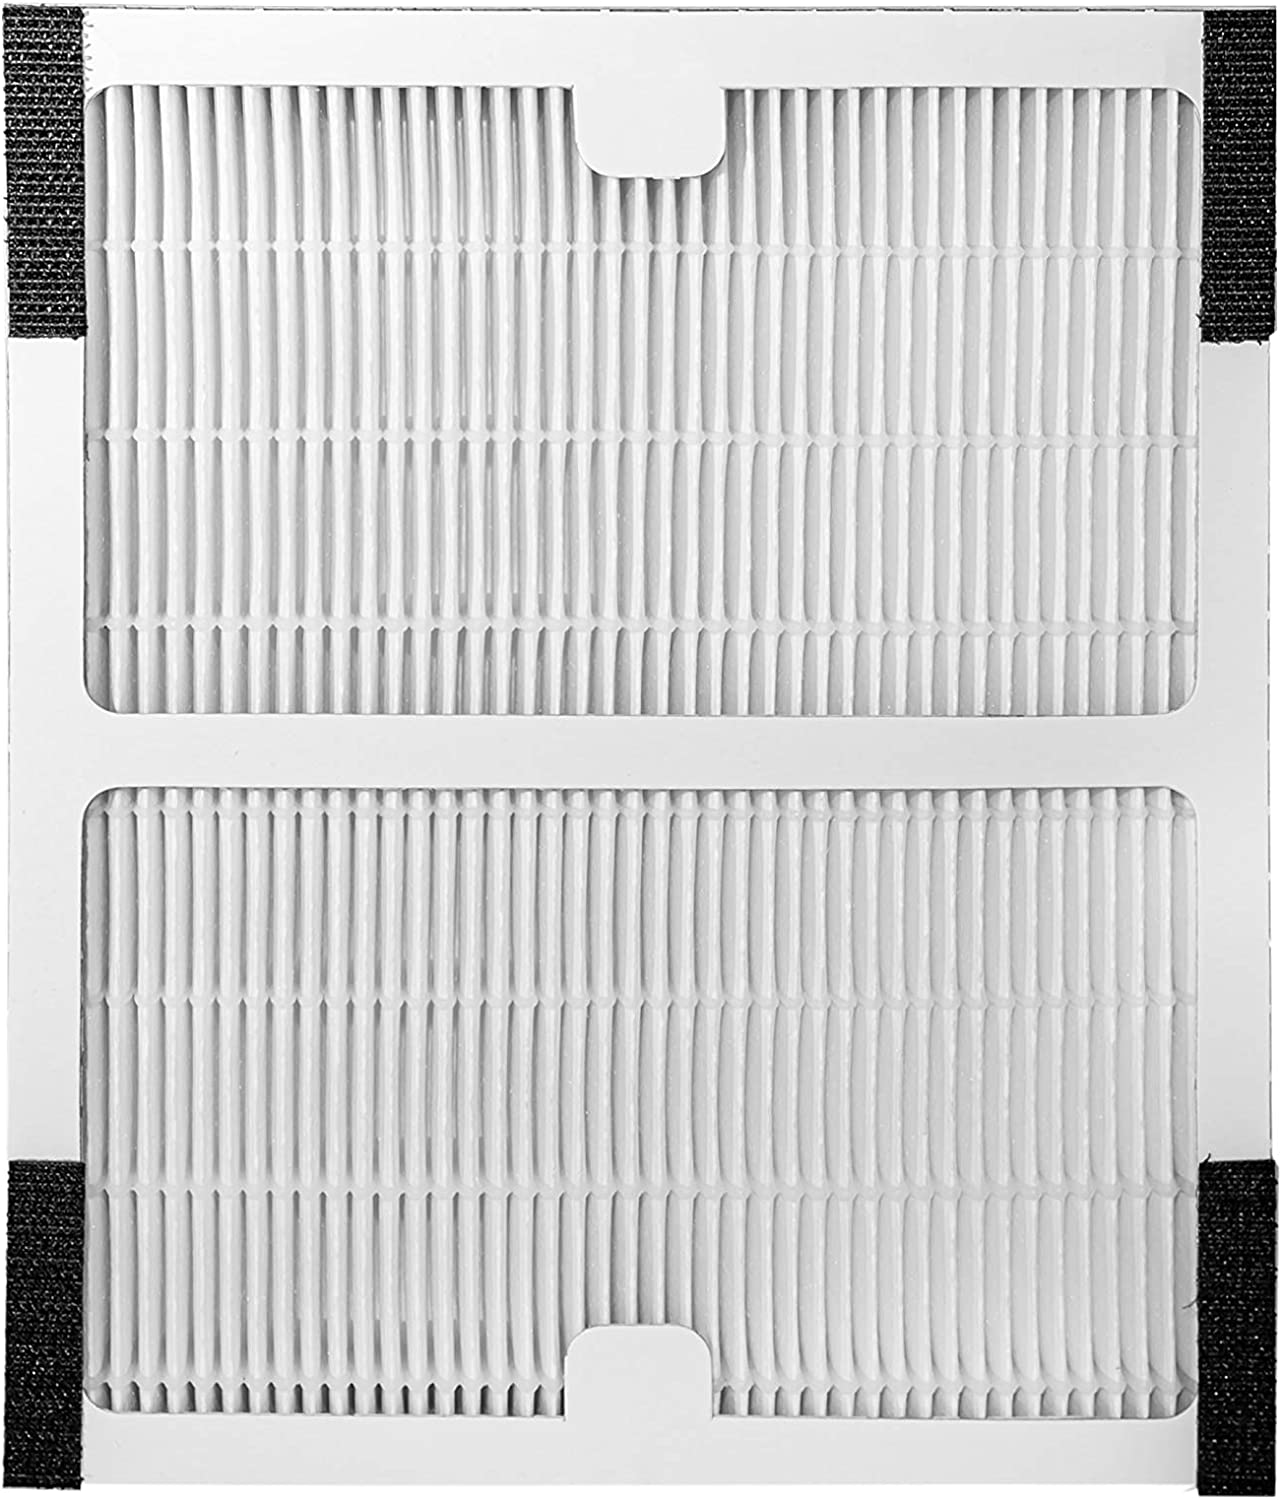 LifeSupplyUSA Replacement HEPA Filter Compatible with Idylis IAP-10-050, IAP-10-125, AC-2125, AC-2126 Air Purifiers, IAF-H-100B (0412558)